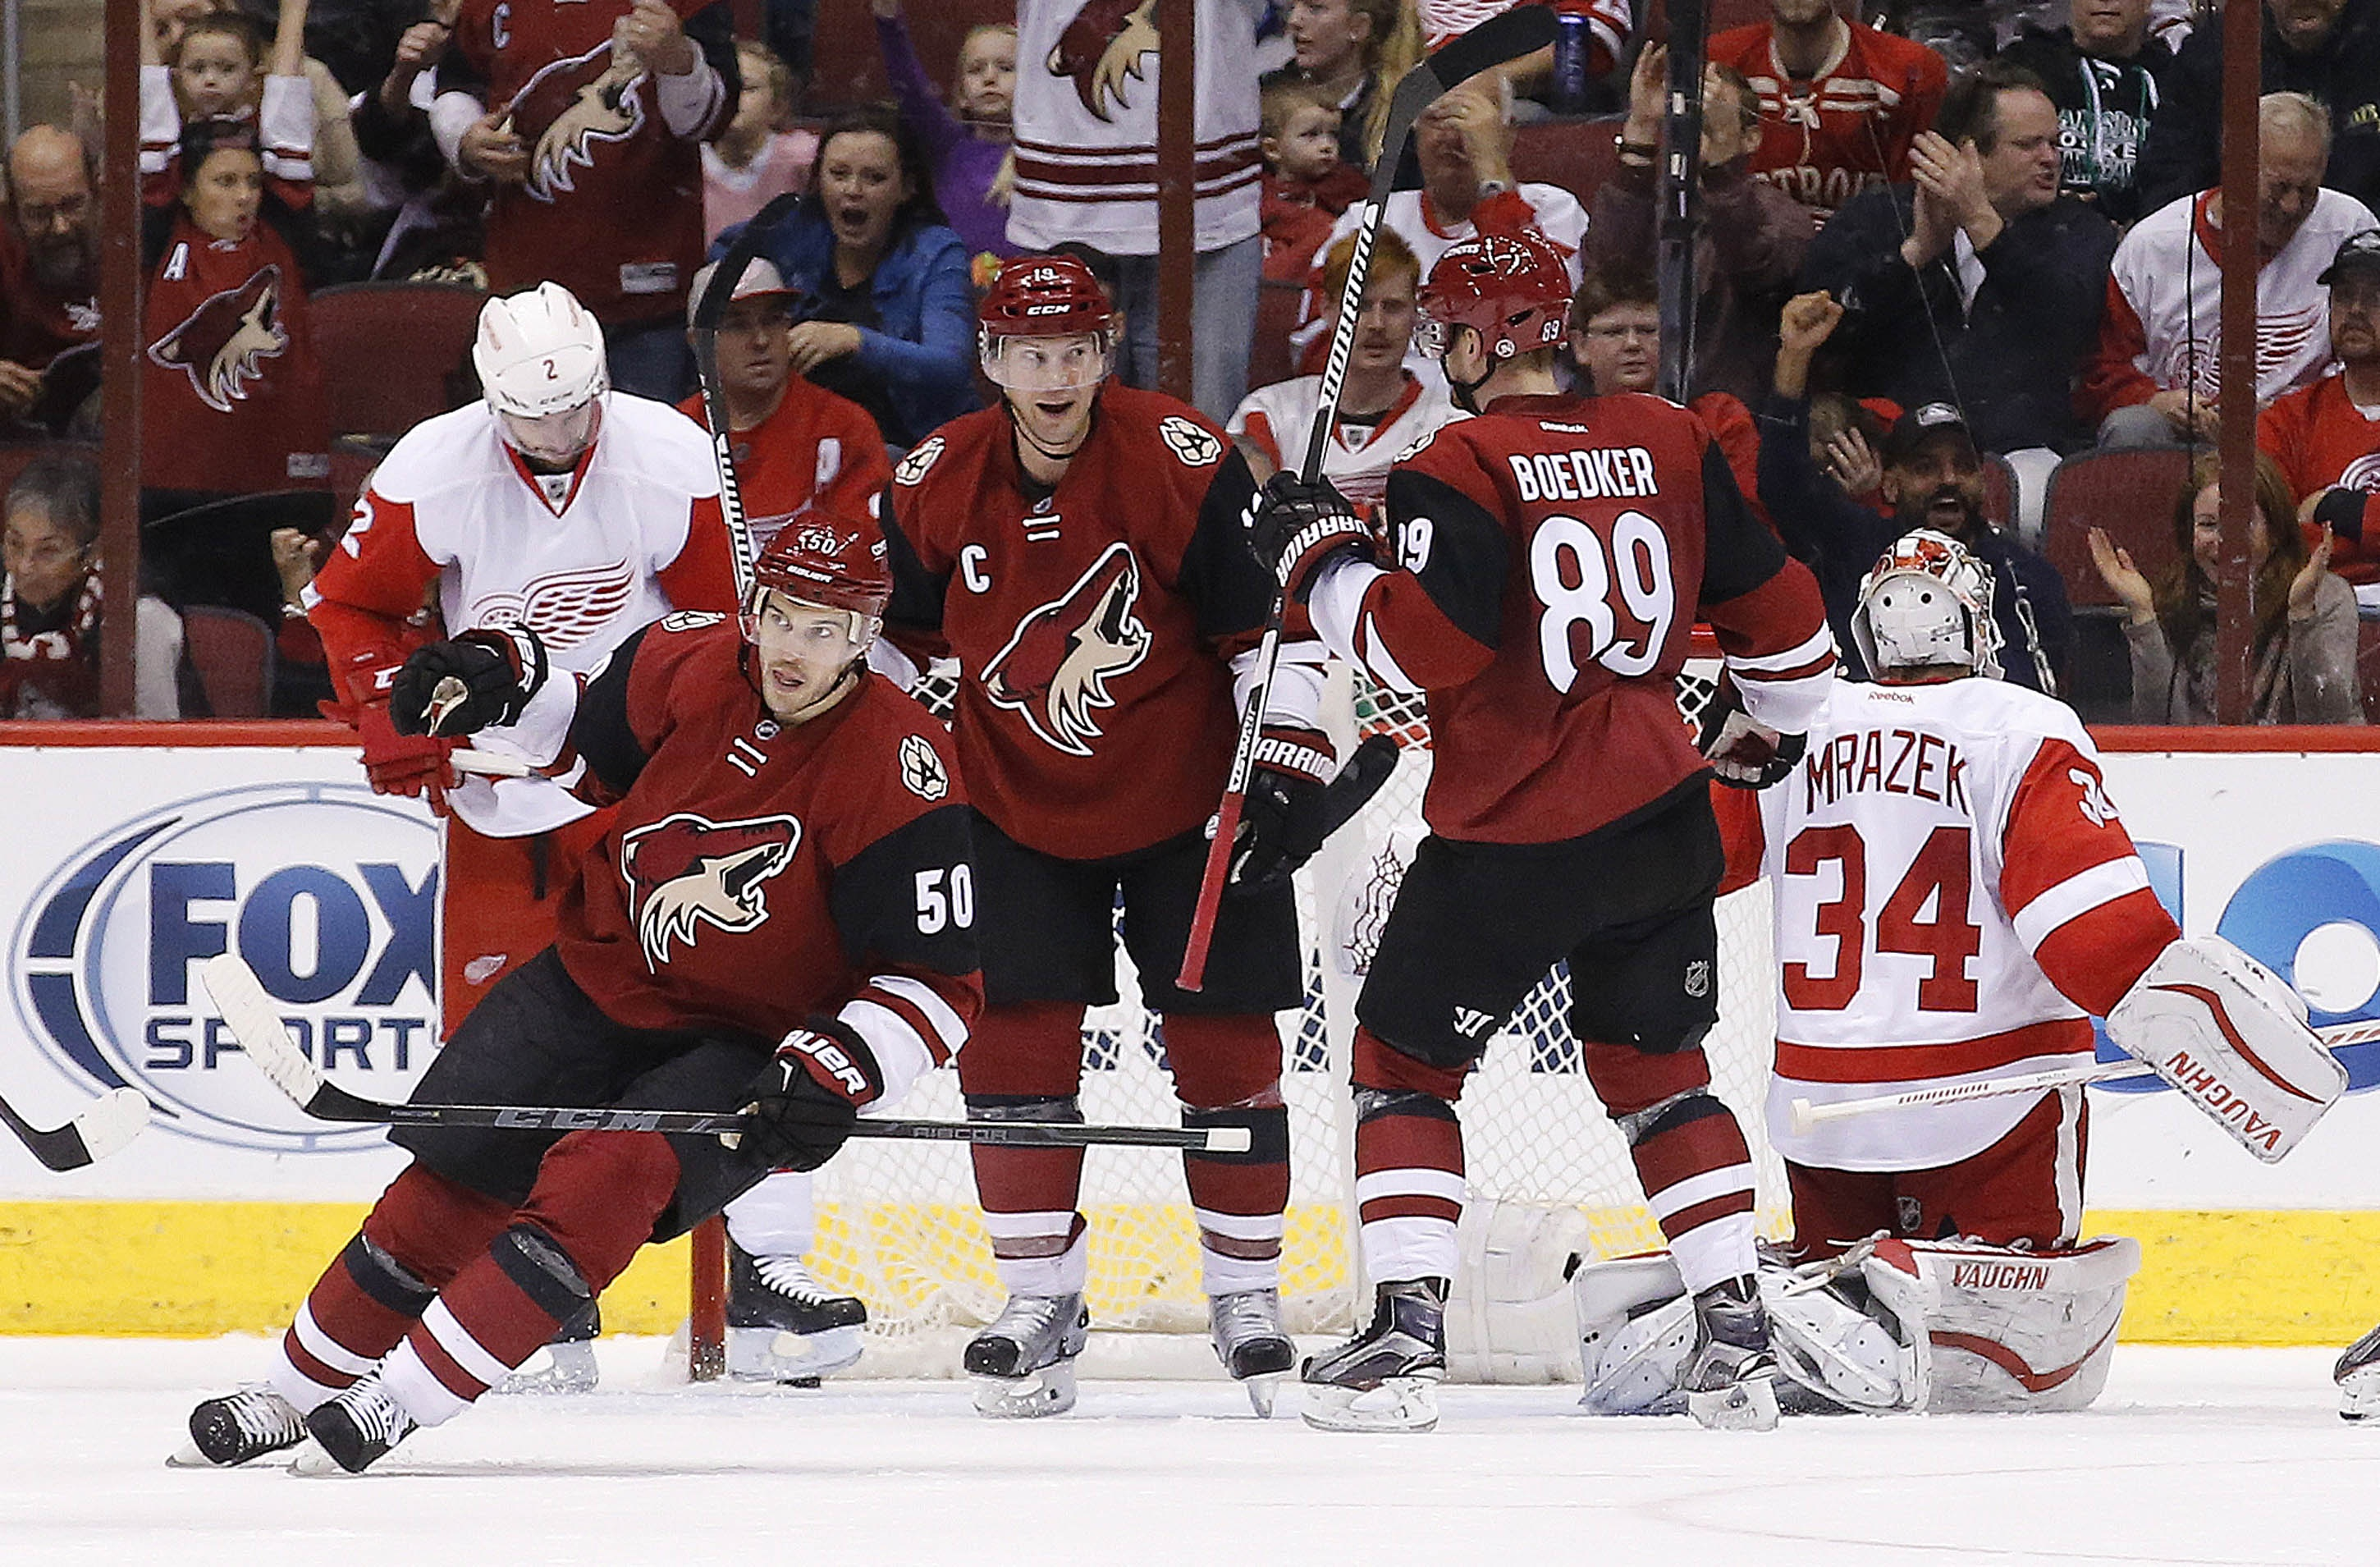 Arizona Coyotes' Mikkel Boedker (89), of Denmark, and Antoine Vermette (50) celebrate a goal by Shane Doan, middle, against Detroit Red Wings' Petr Mrazek (34), of the Czech Republic, as Red Wings' Brendan Smith (2) looks away from the celebration during